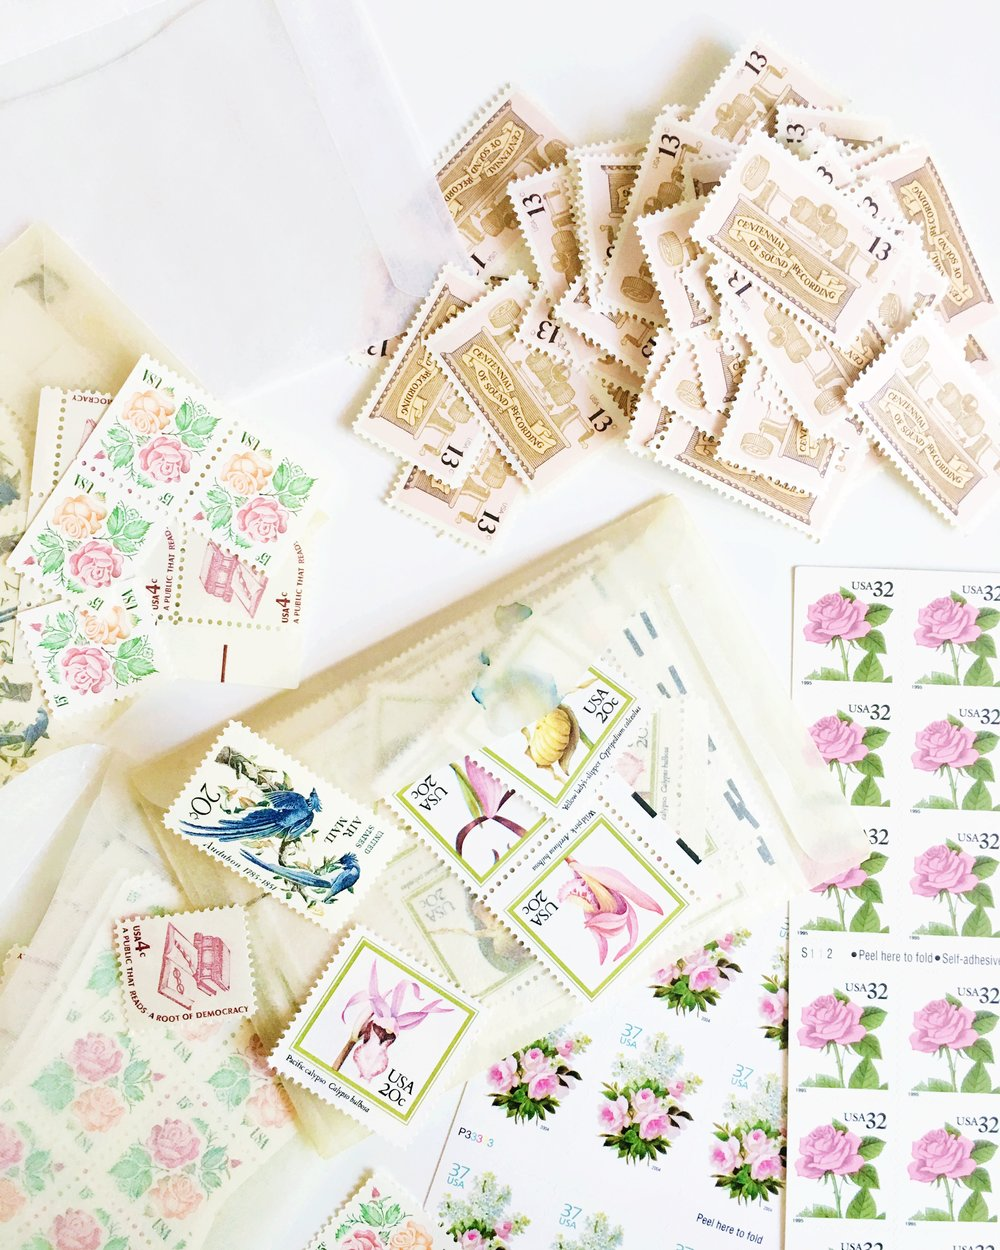 How to assemble vintage stamps | Vintage stamp assembly | My favorite vintage stamps | Wedding postage stamps | Vintage postage stamps from Verde Studio | Simply Jessica Marie